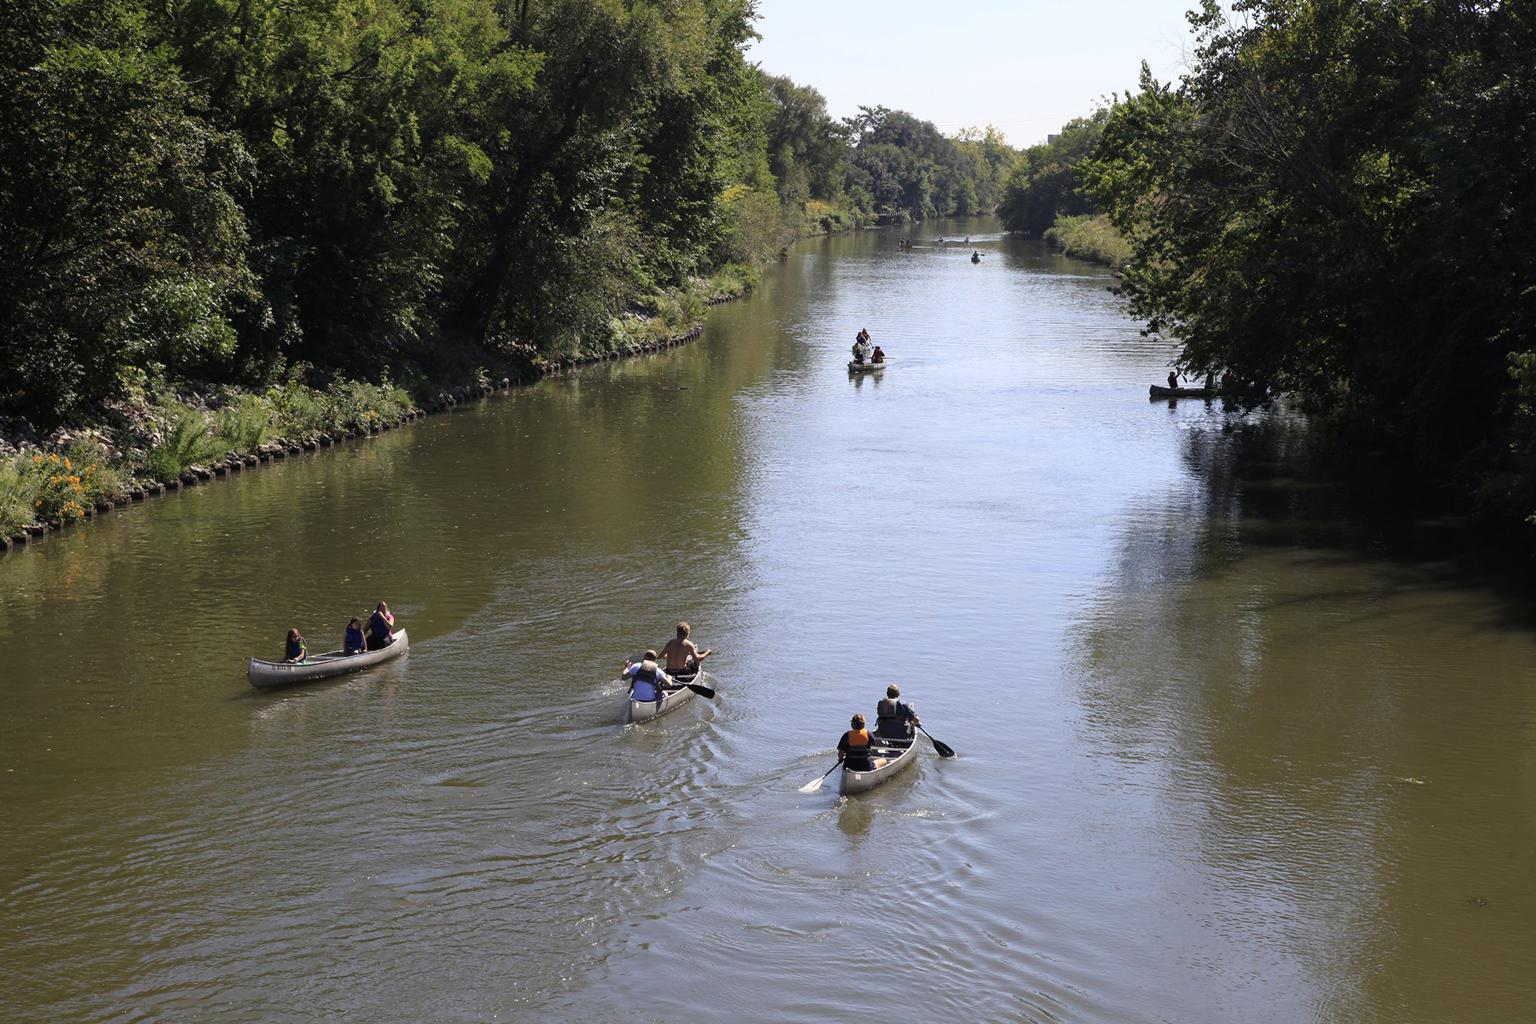 Kayakers on the North Branch of the Chicago River in Horner Park. (Courtesy U.S. Army Corps of Engineers)